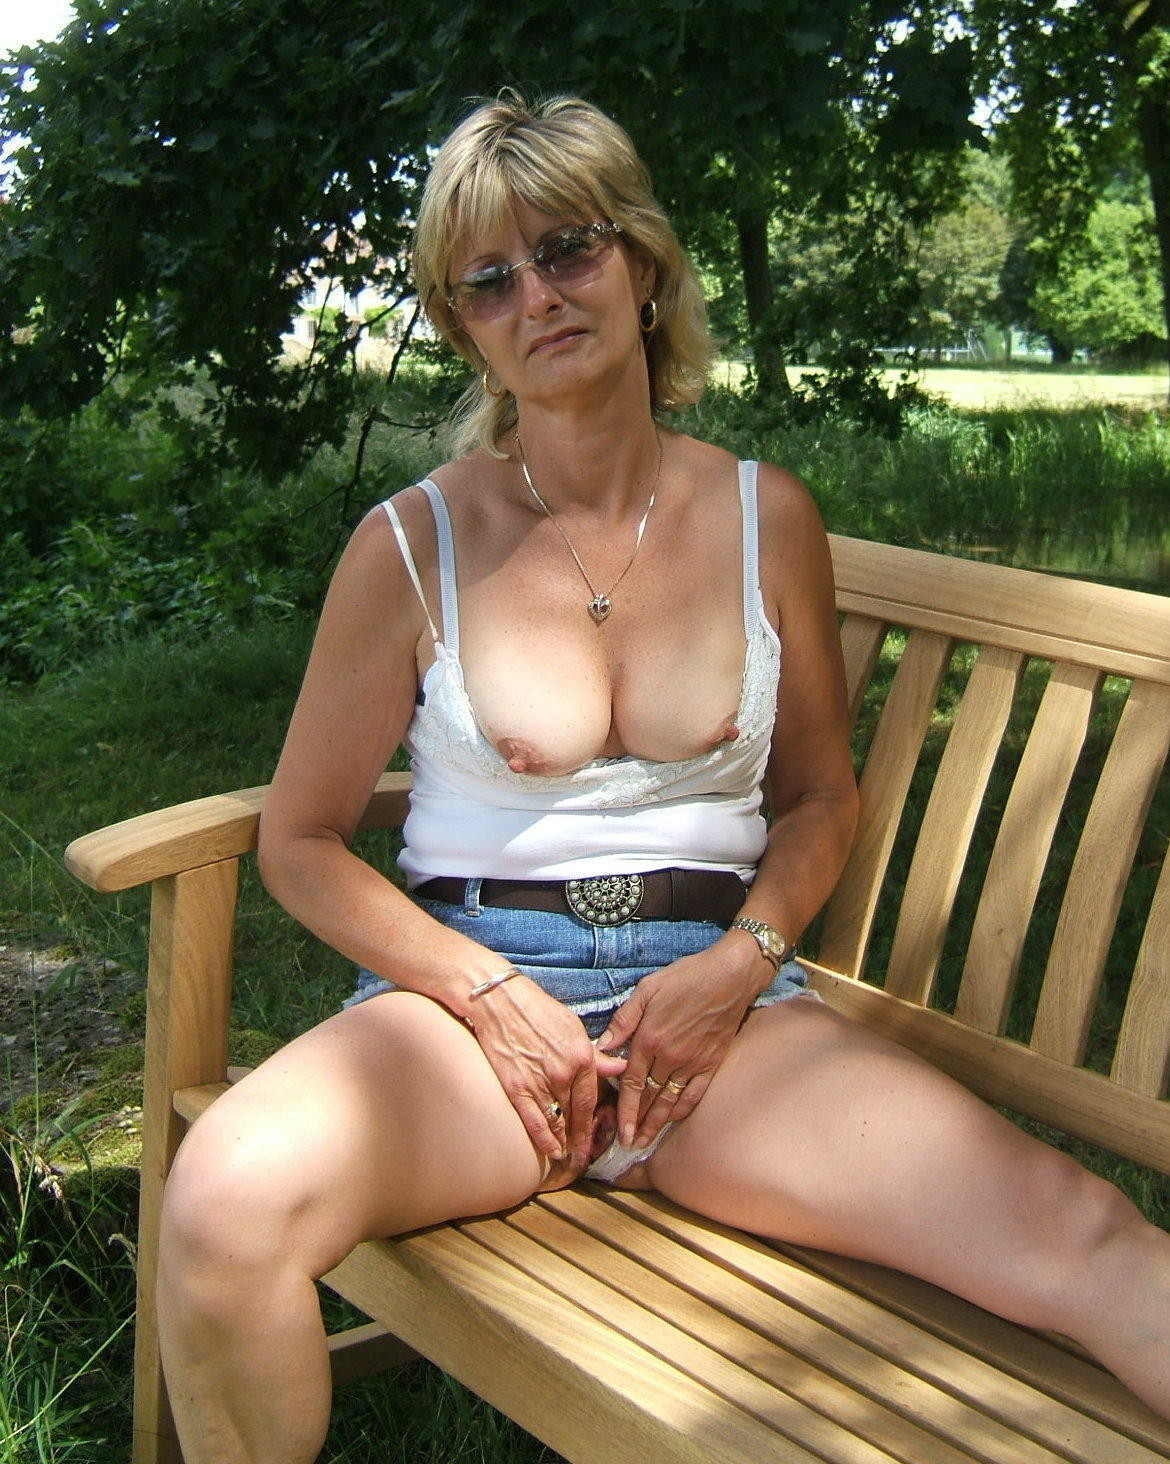 Brenda a divorced granny softly teasing her sweet old tight cunt